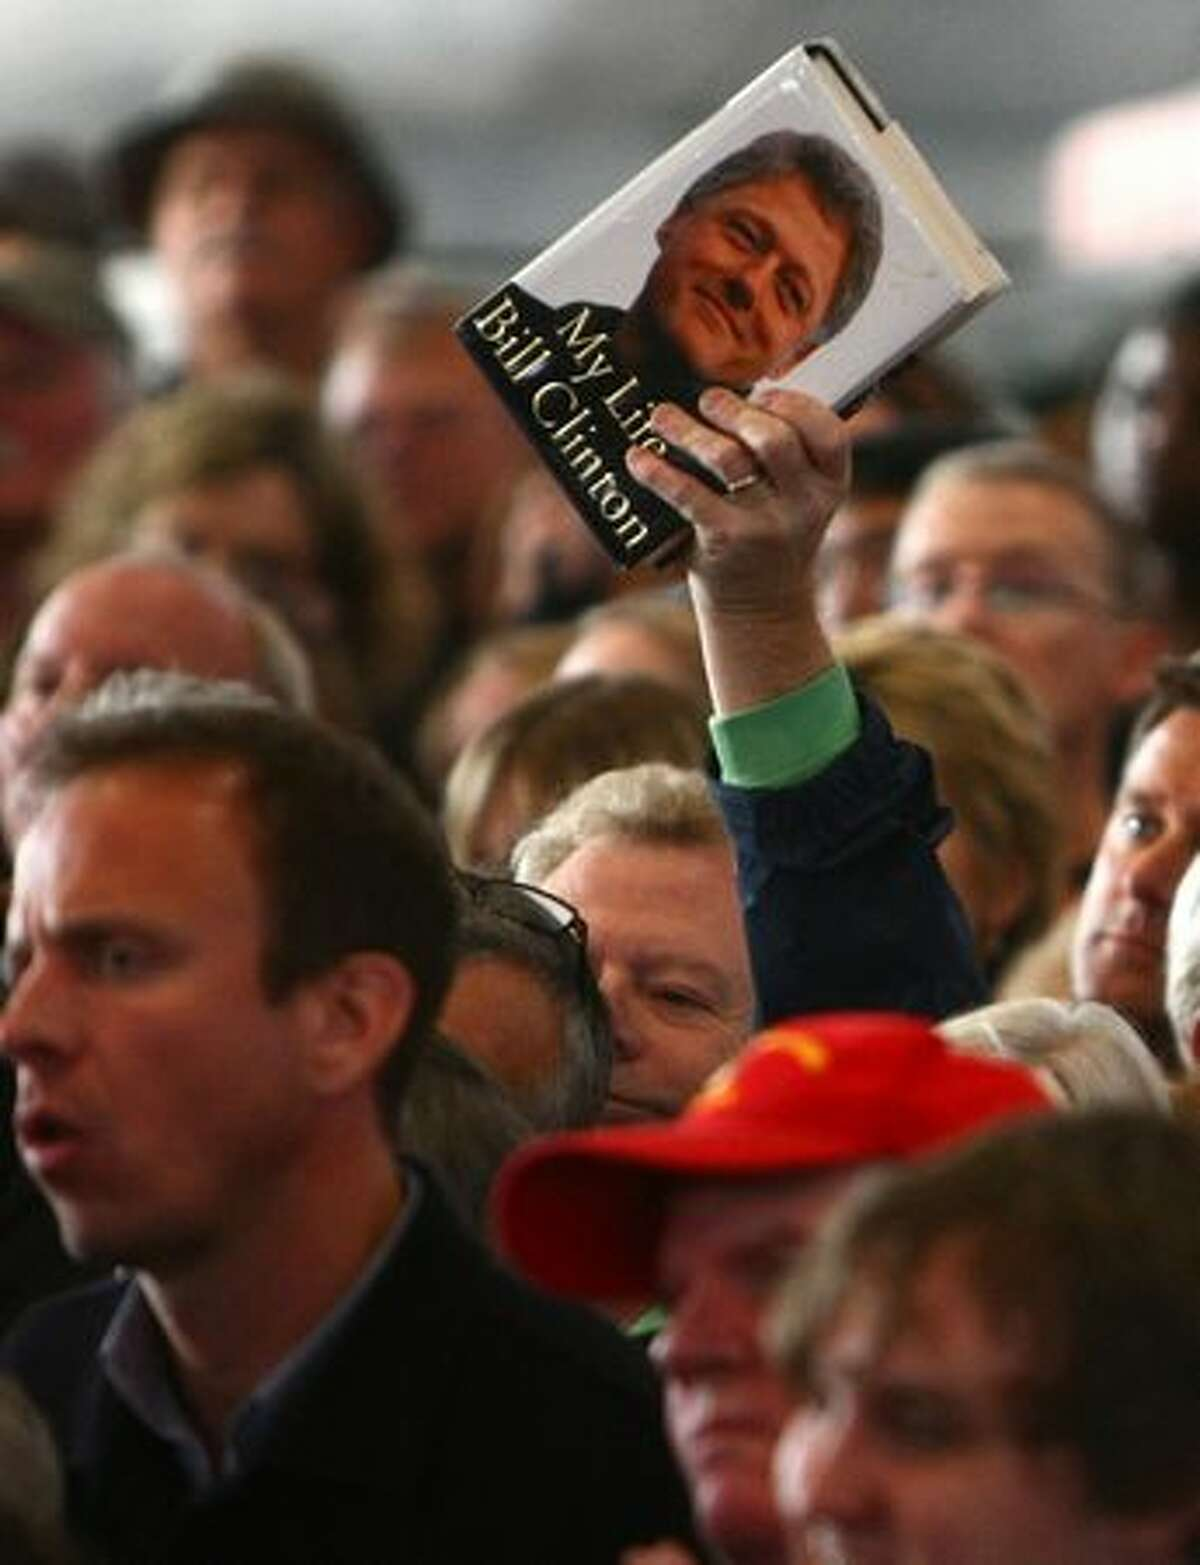 A fan of U.S. President Bill Clinton holds up his book during a campaign event for U.S. Sen. Patty Murray on Monday.